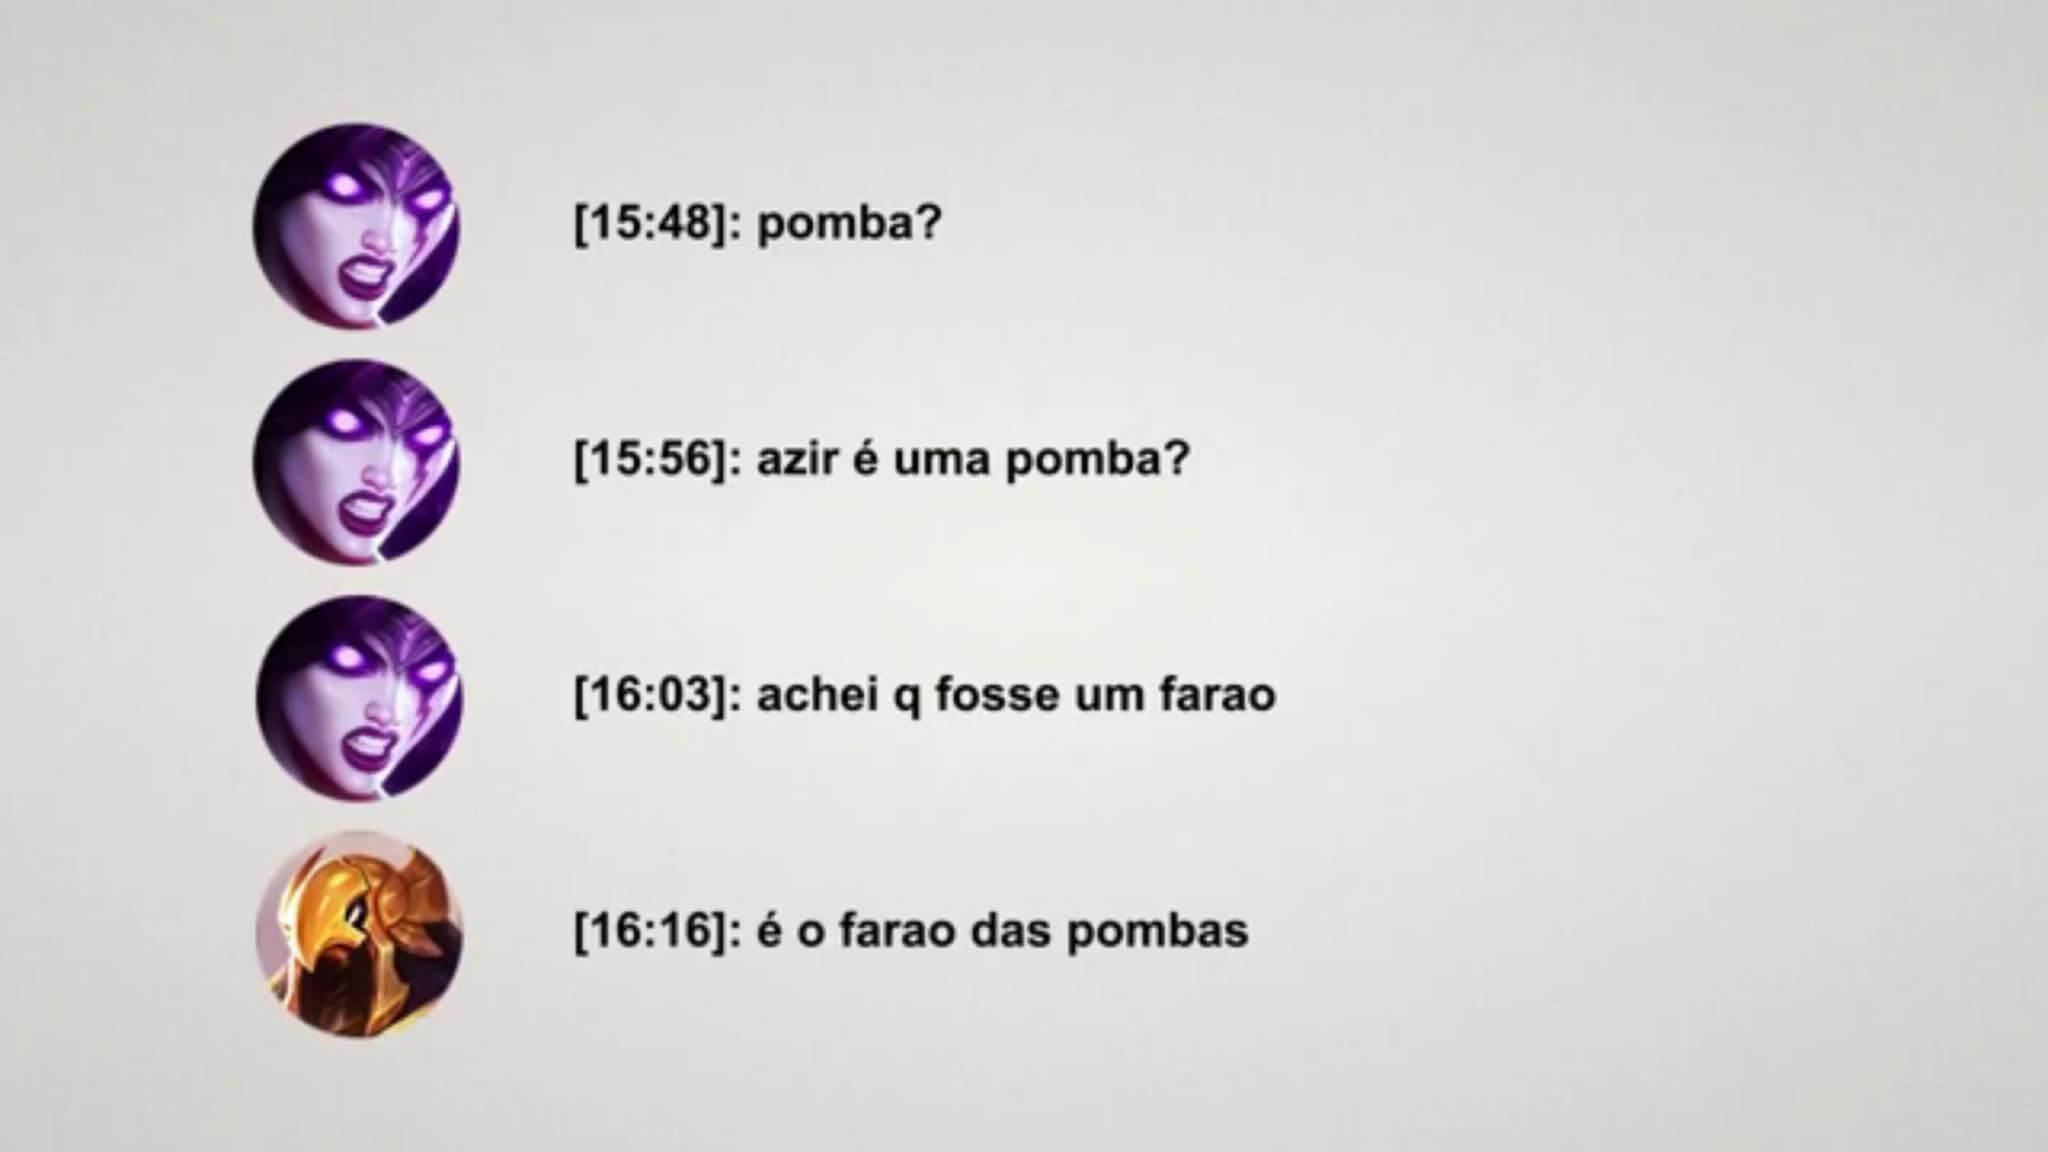 perolas do chat de league of legends, azir o faraó dos pombos